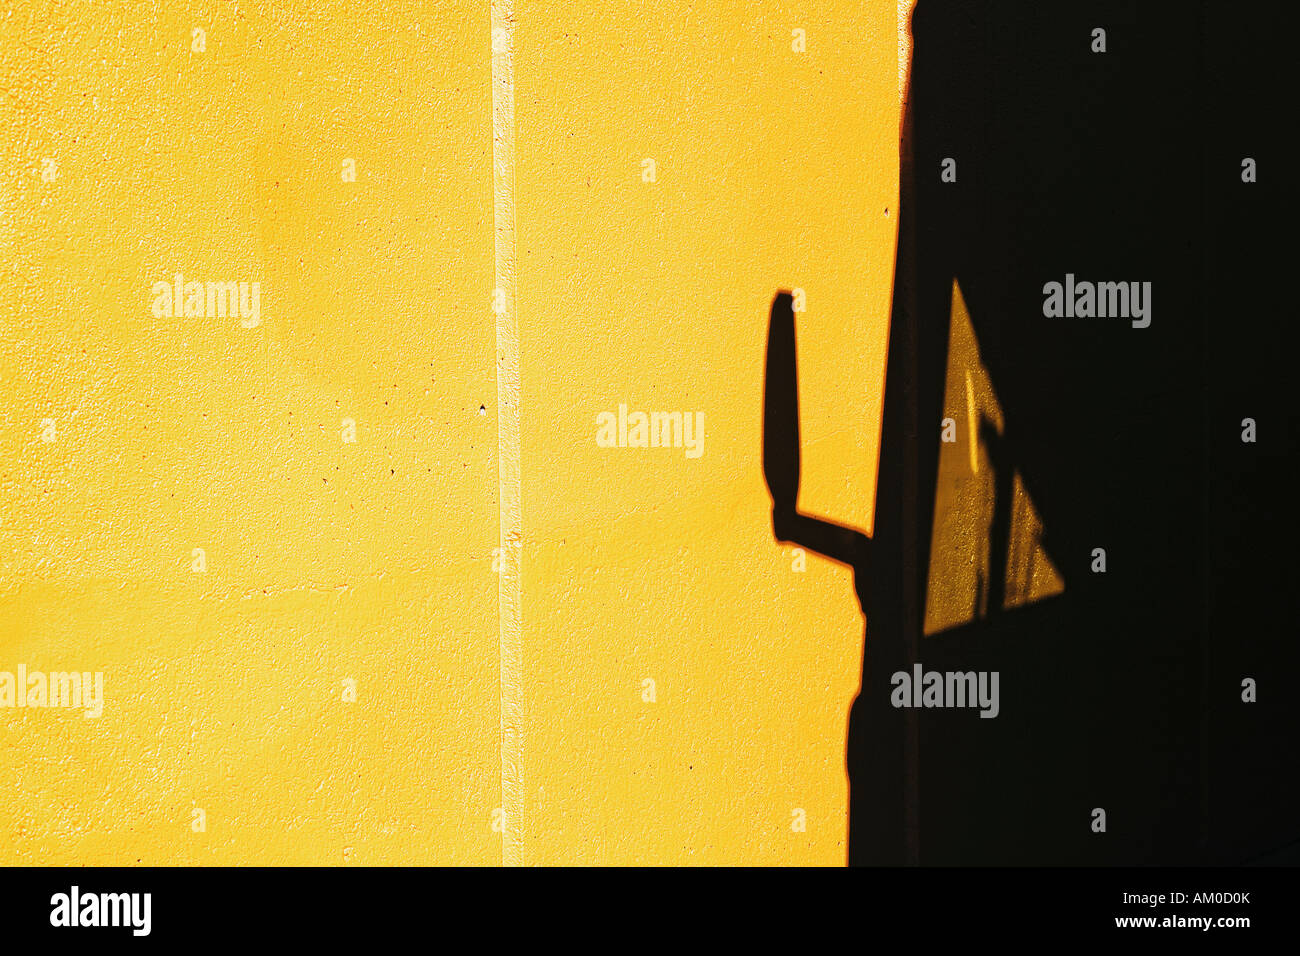 Mirror Wall Stock Photos & Mirror Wall Stock Images - Alamy